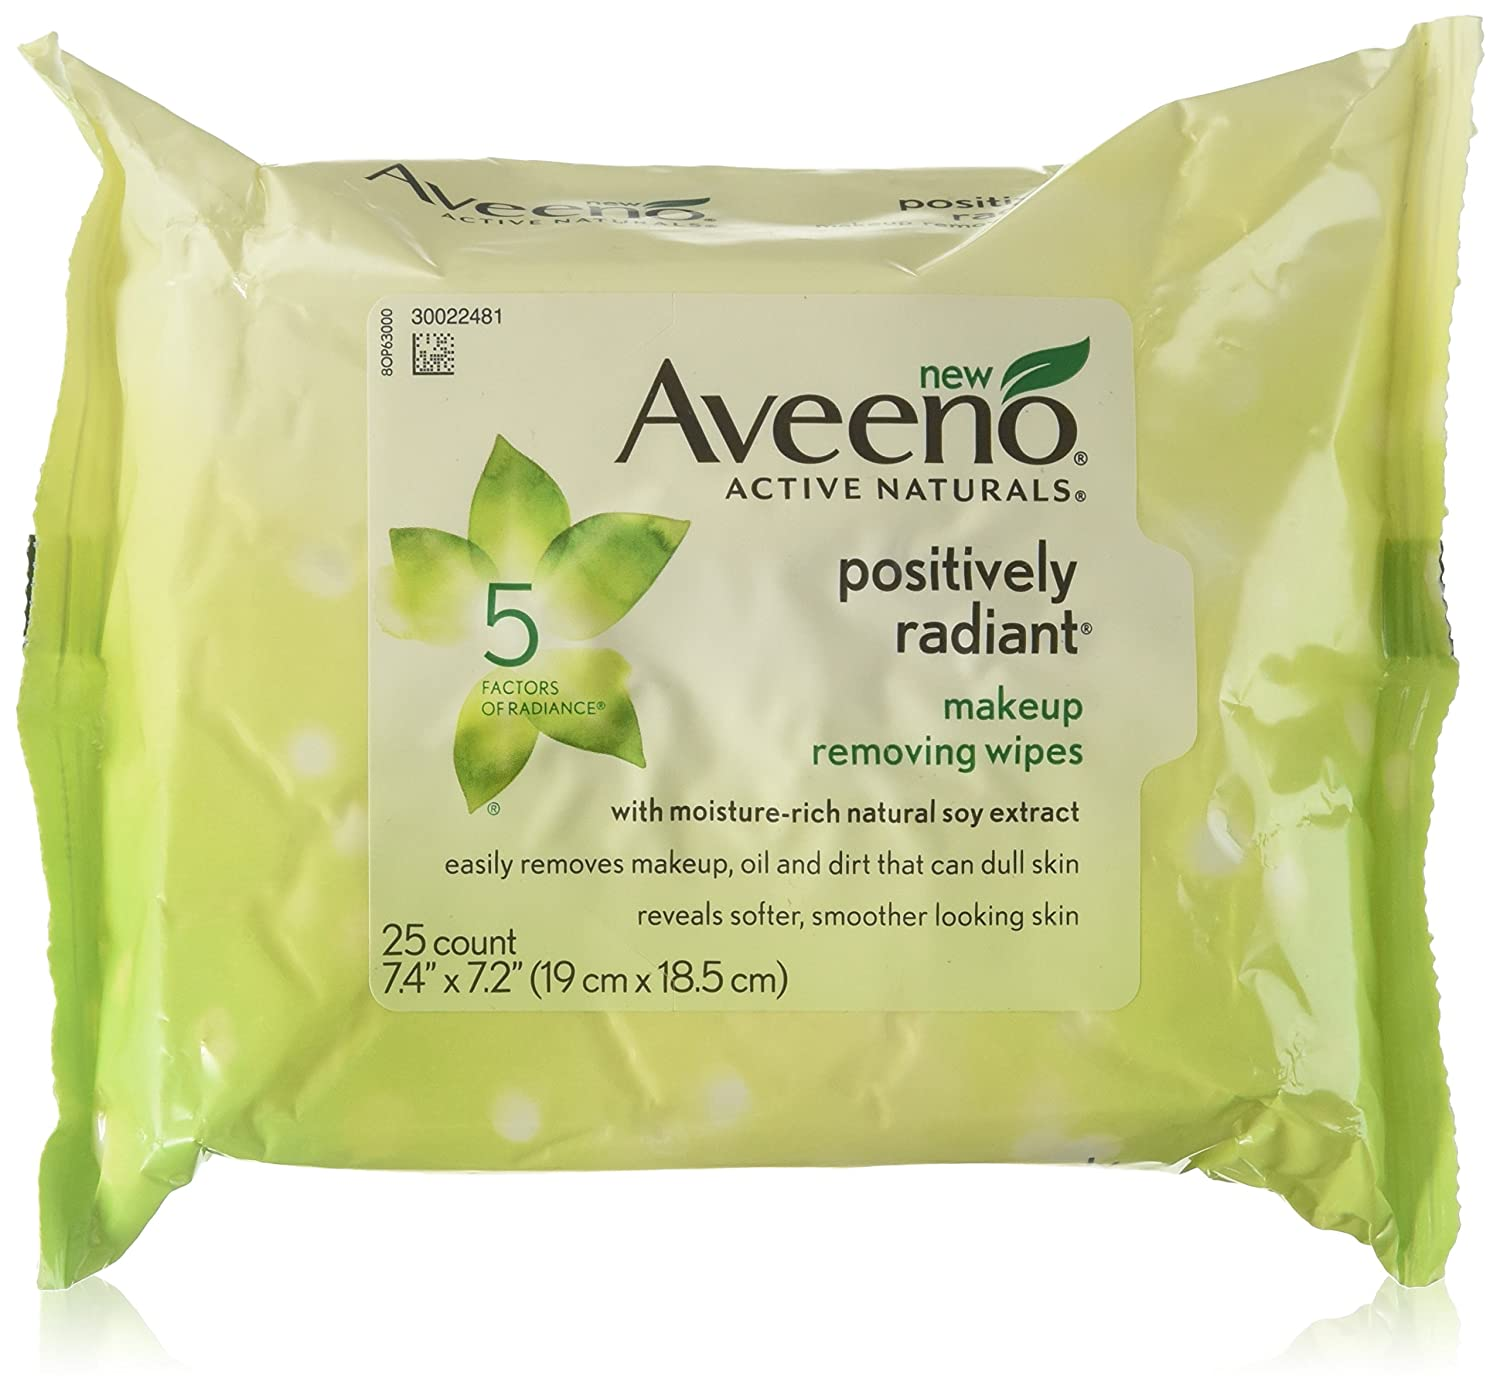 Aveeno Active Naturals Positively Radiant Makeup Removing Wipes 25 Wipes (Pac.